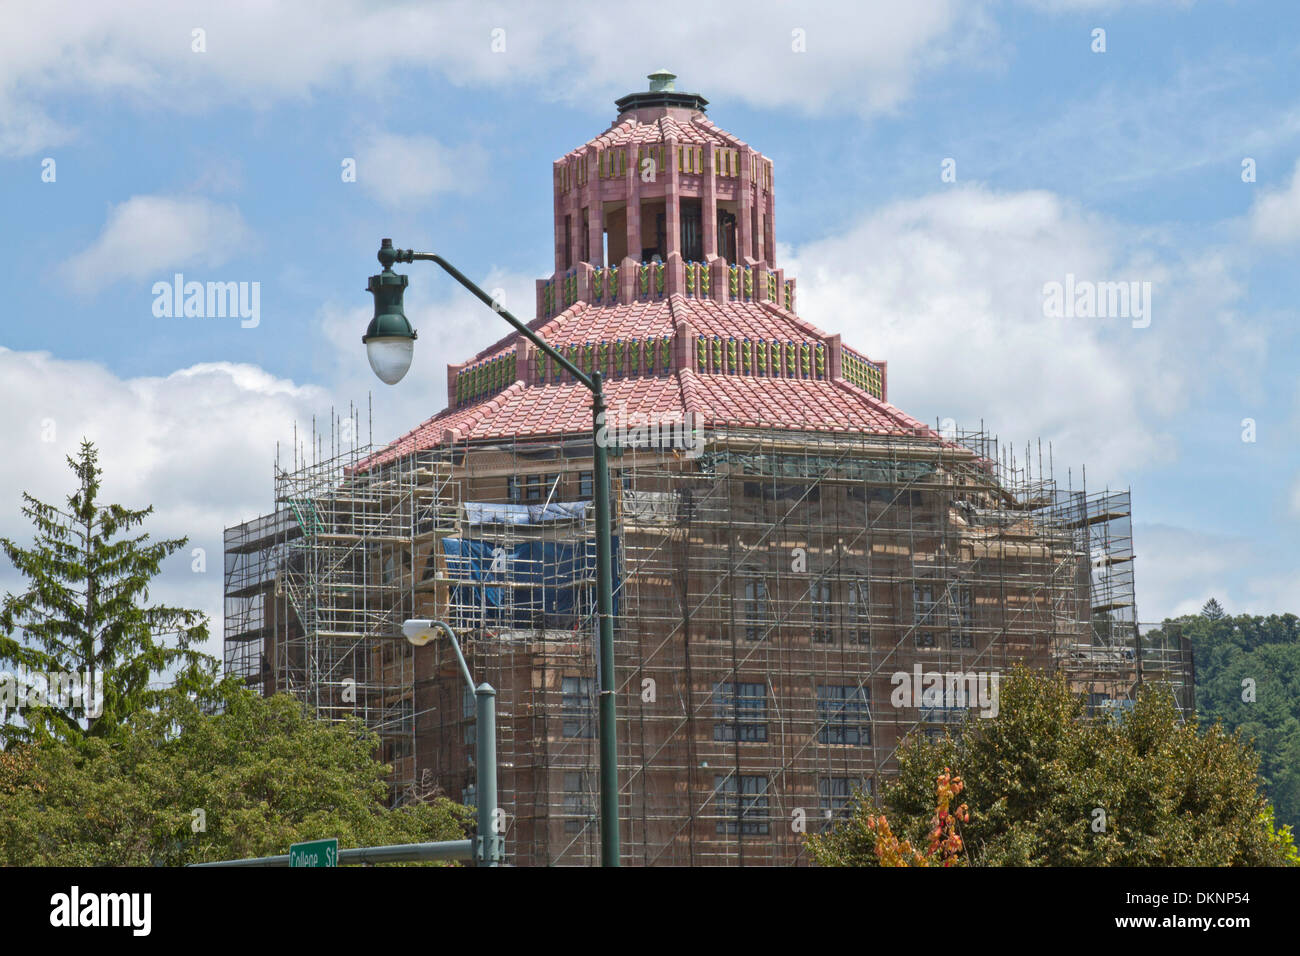 Downtown Asheville City Hall building under renovation is bristling with construction scaffolding Stock Photo